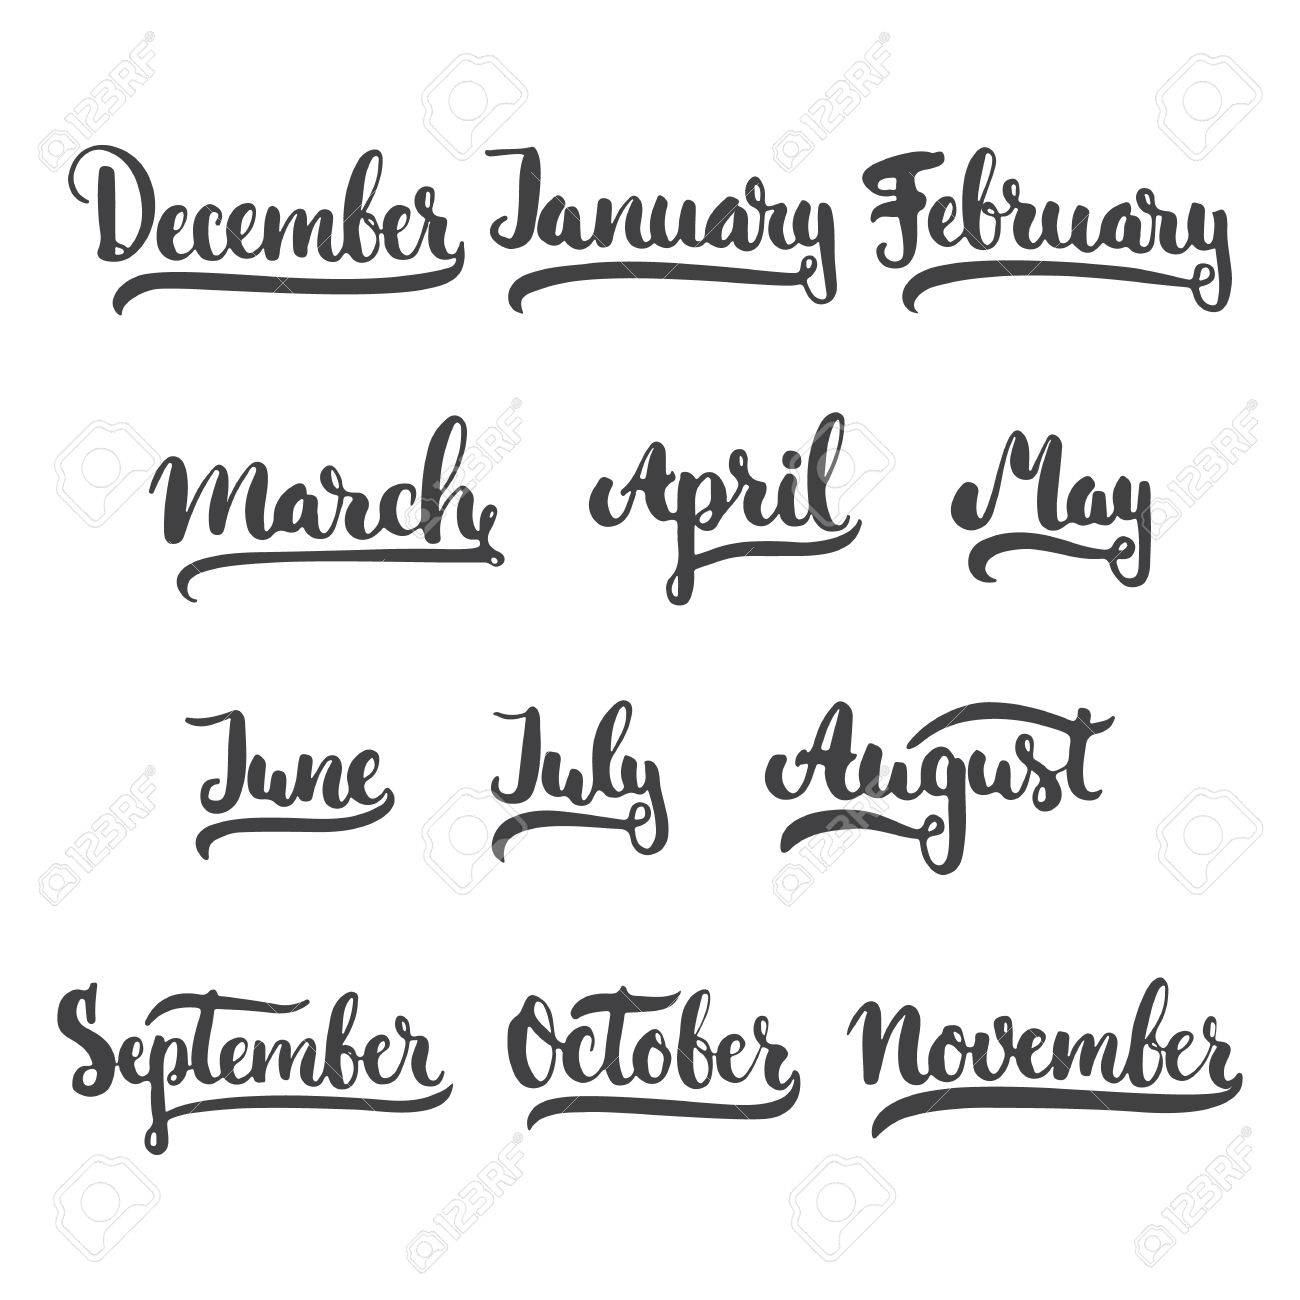 12 month of year january february march april may june